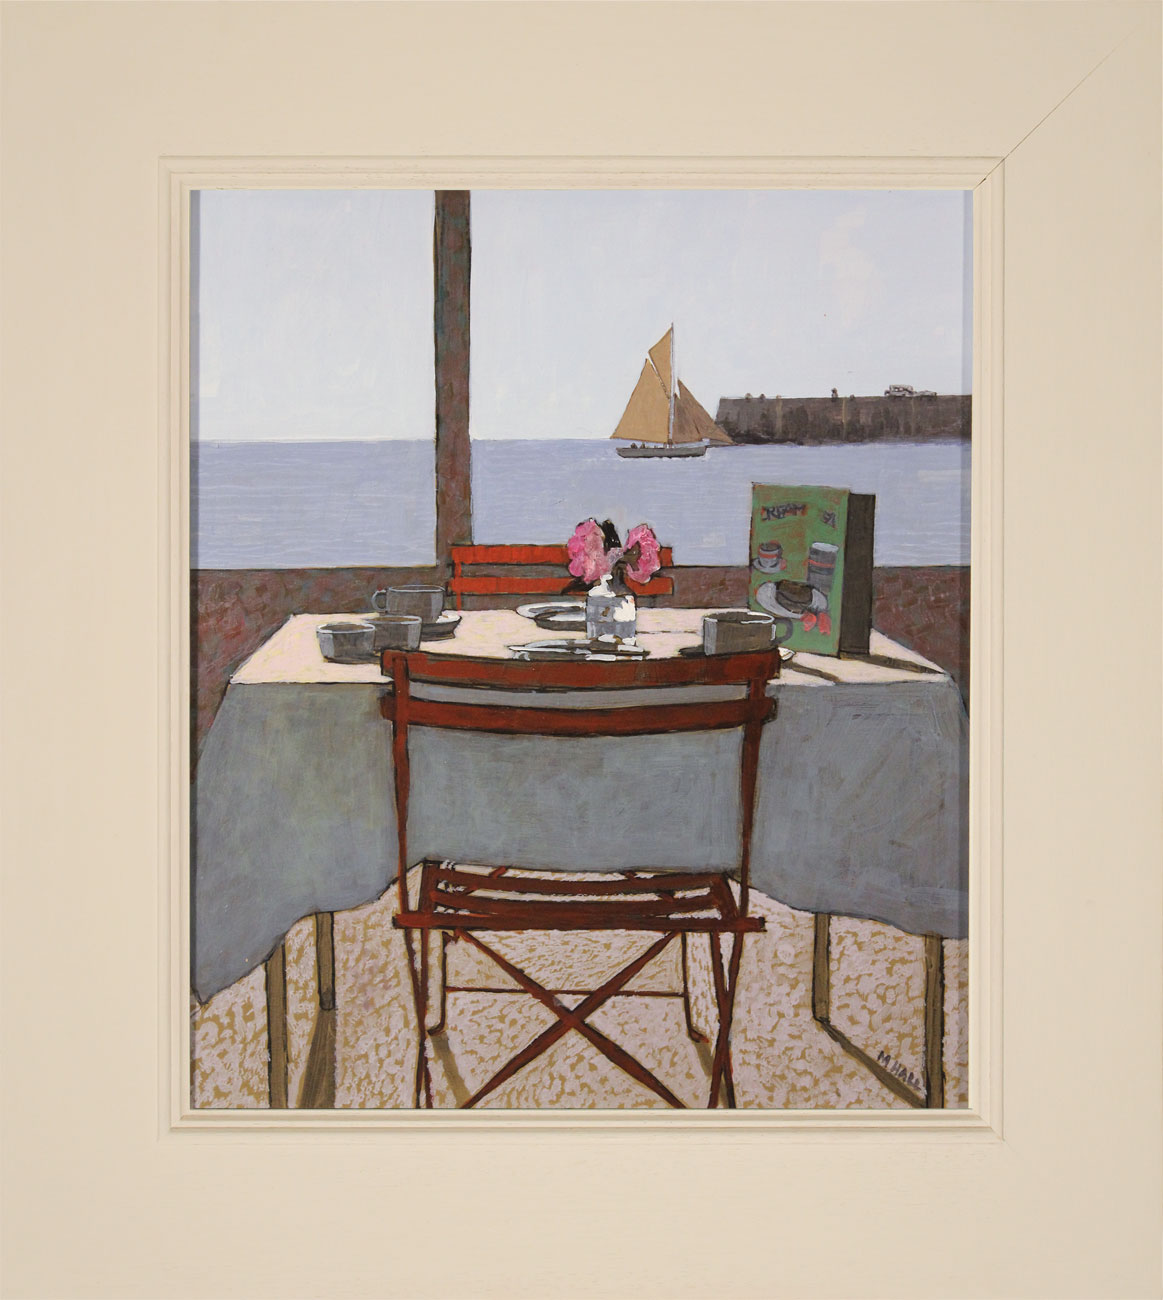 Mike Hall, Original acrylic painting on board, View from the Dining Table, click to enlarge